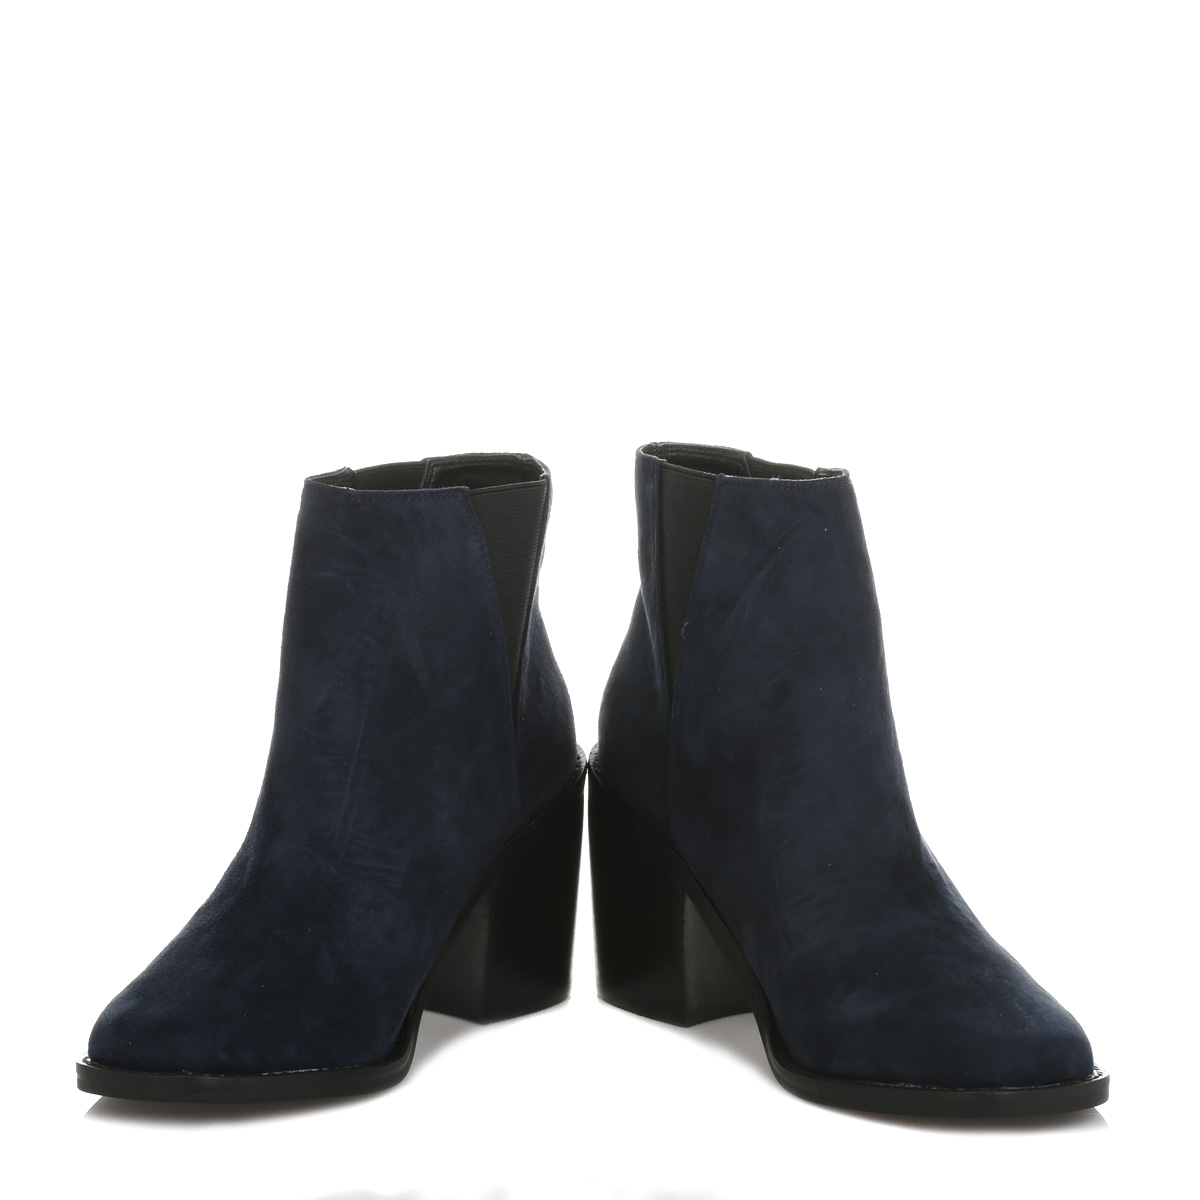 shellys womens ankle boots casual shoes navy blue